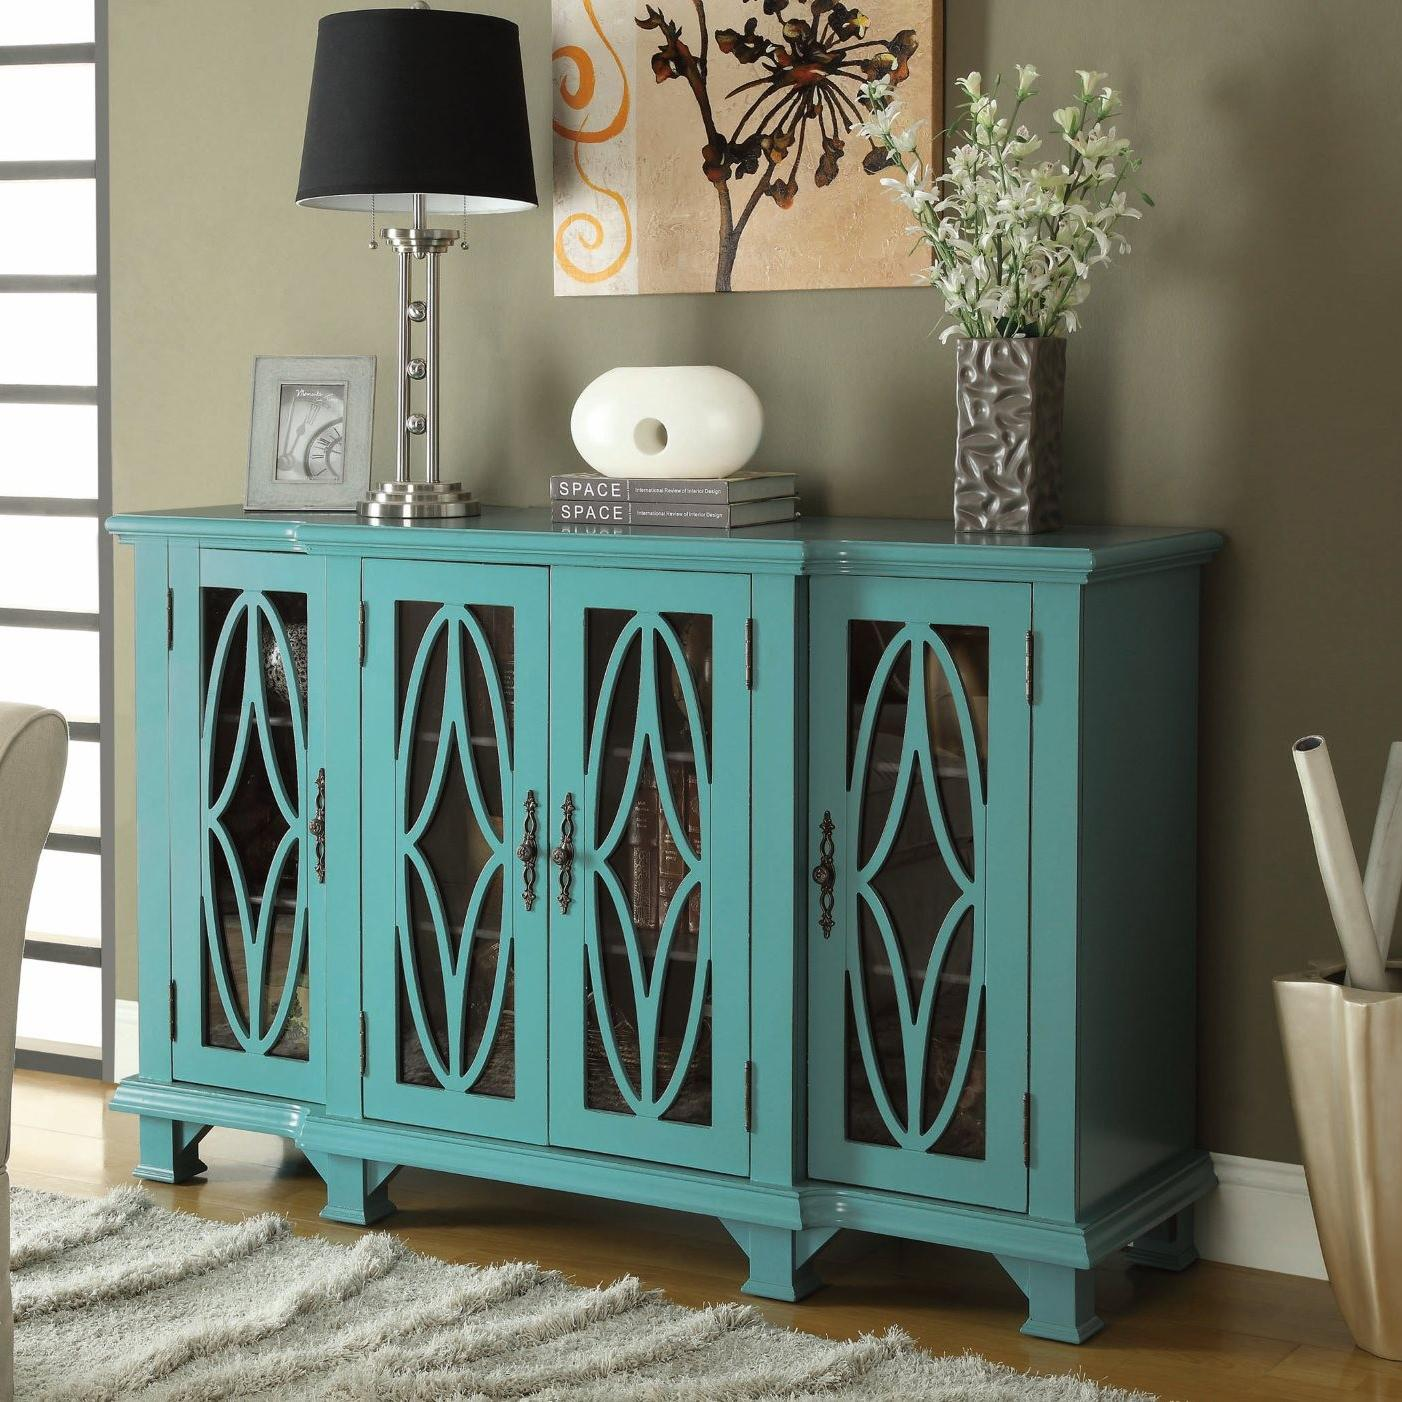 coaster accent cabinets large teal cabinet with glass doors products color tables and chests table narrow coffee for small space bunnings outdoor setting office storage studded